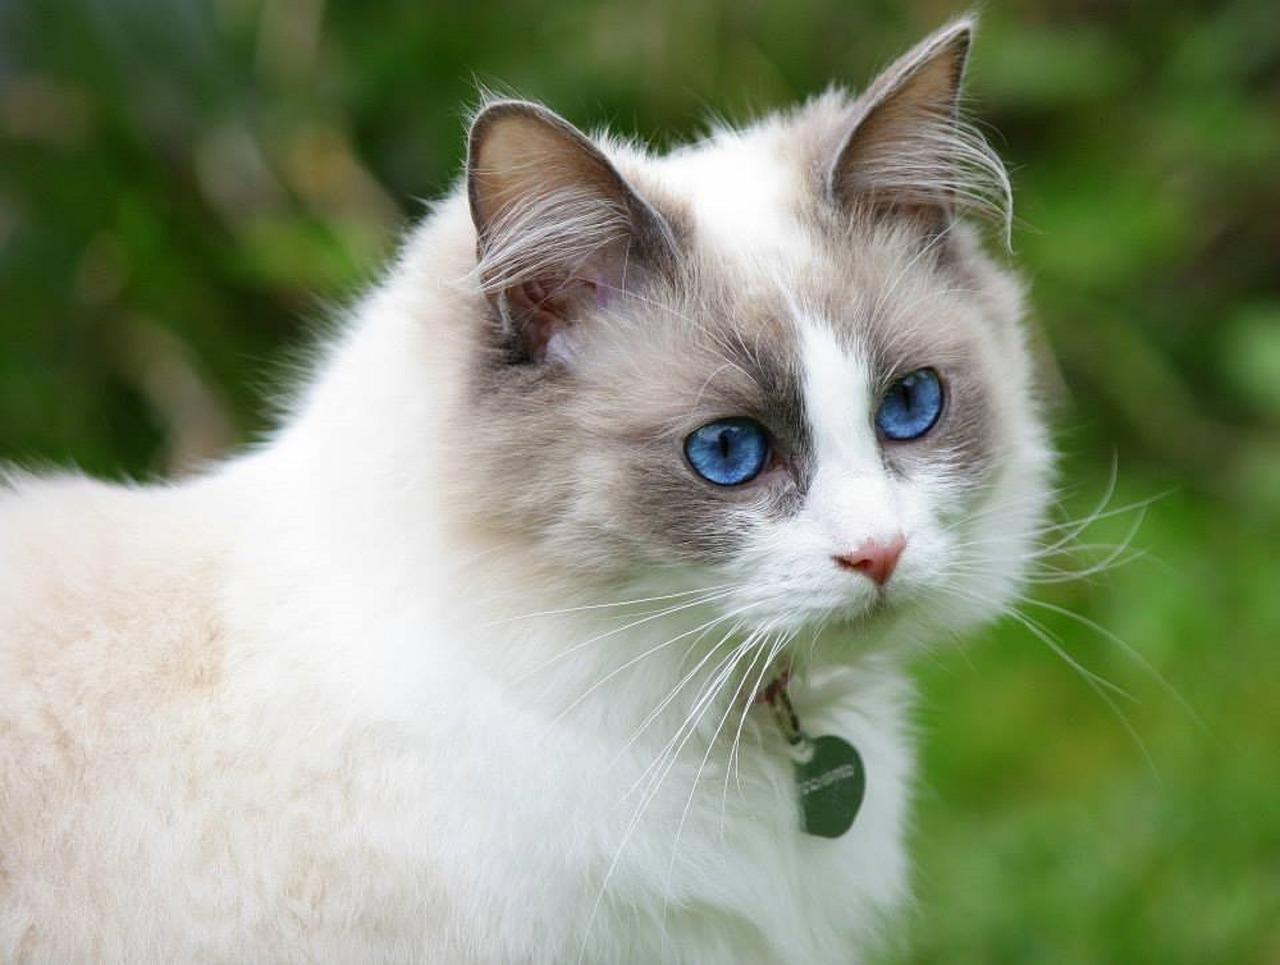 Getting To Know The Ragdoll Cat